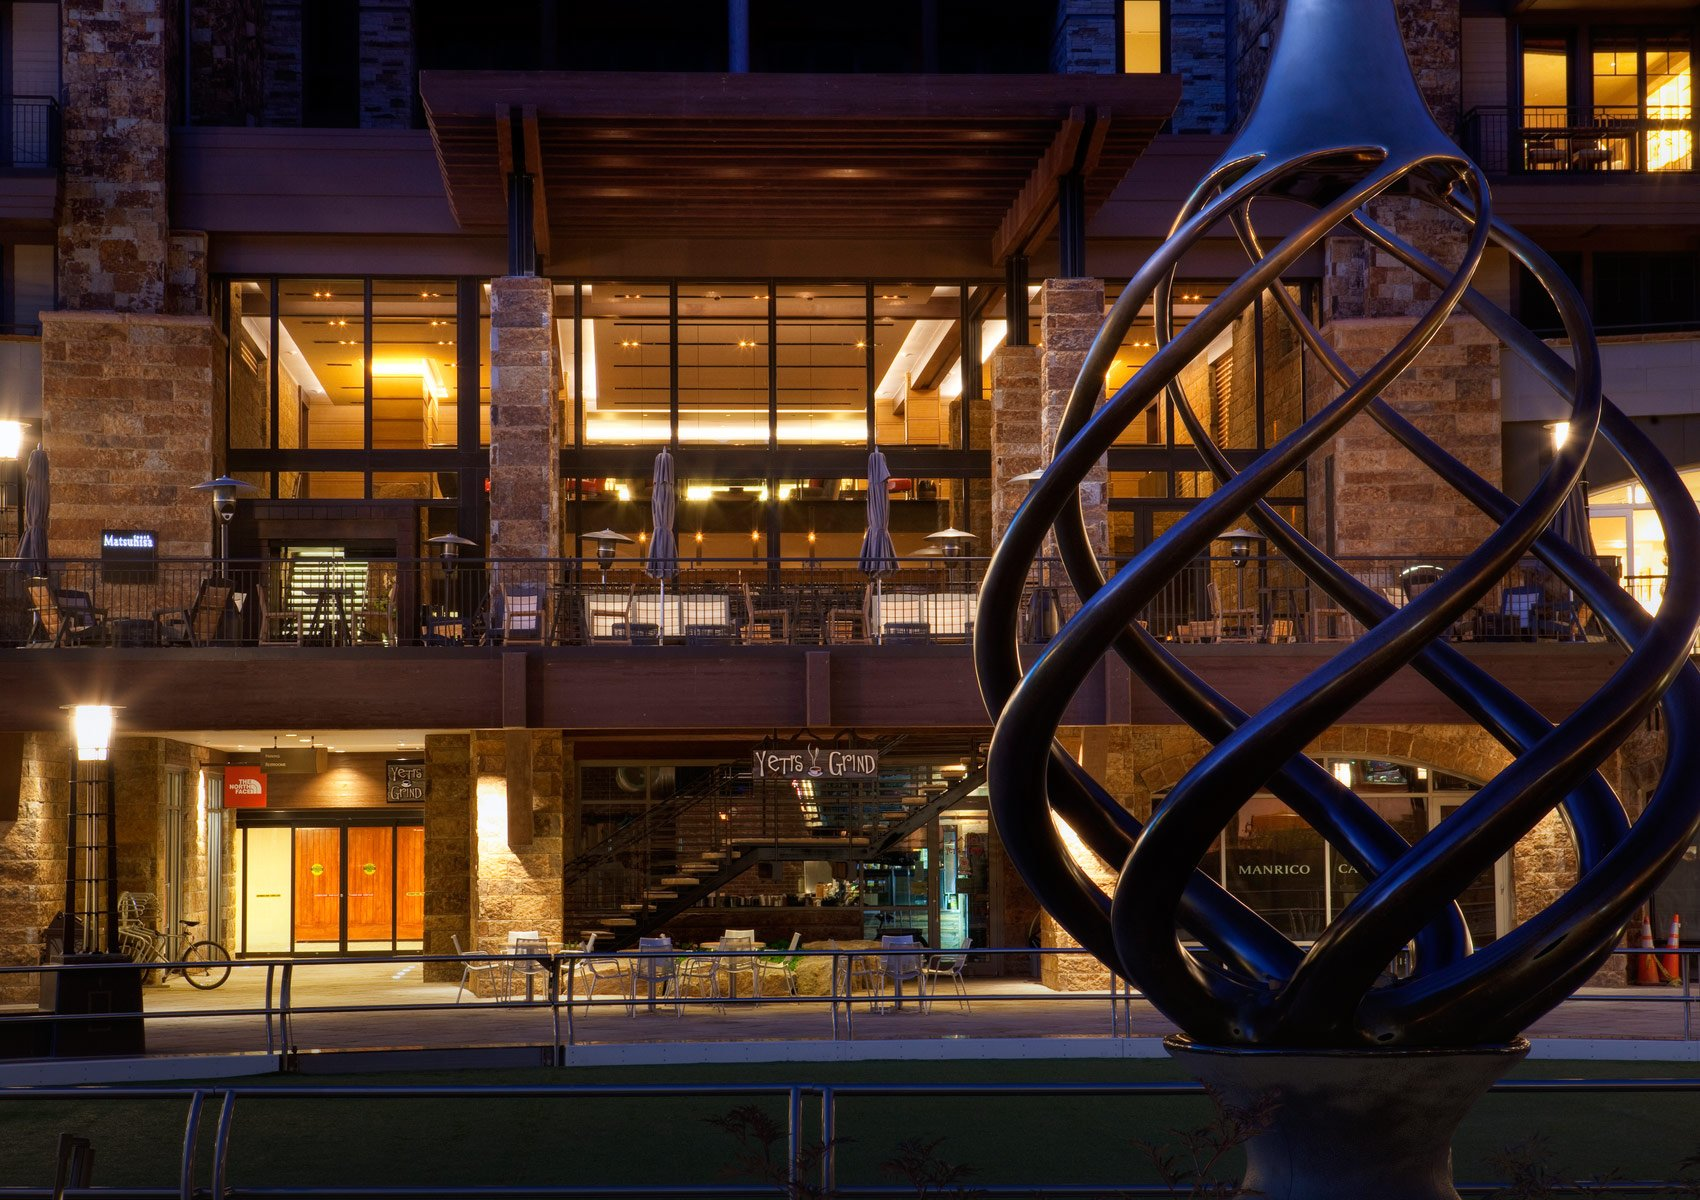 View Images of Matsuhisa Restaurant in Vail, CO